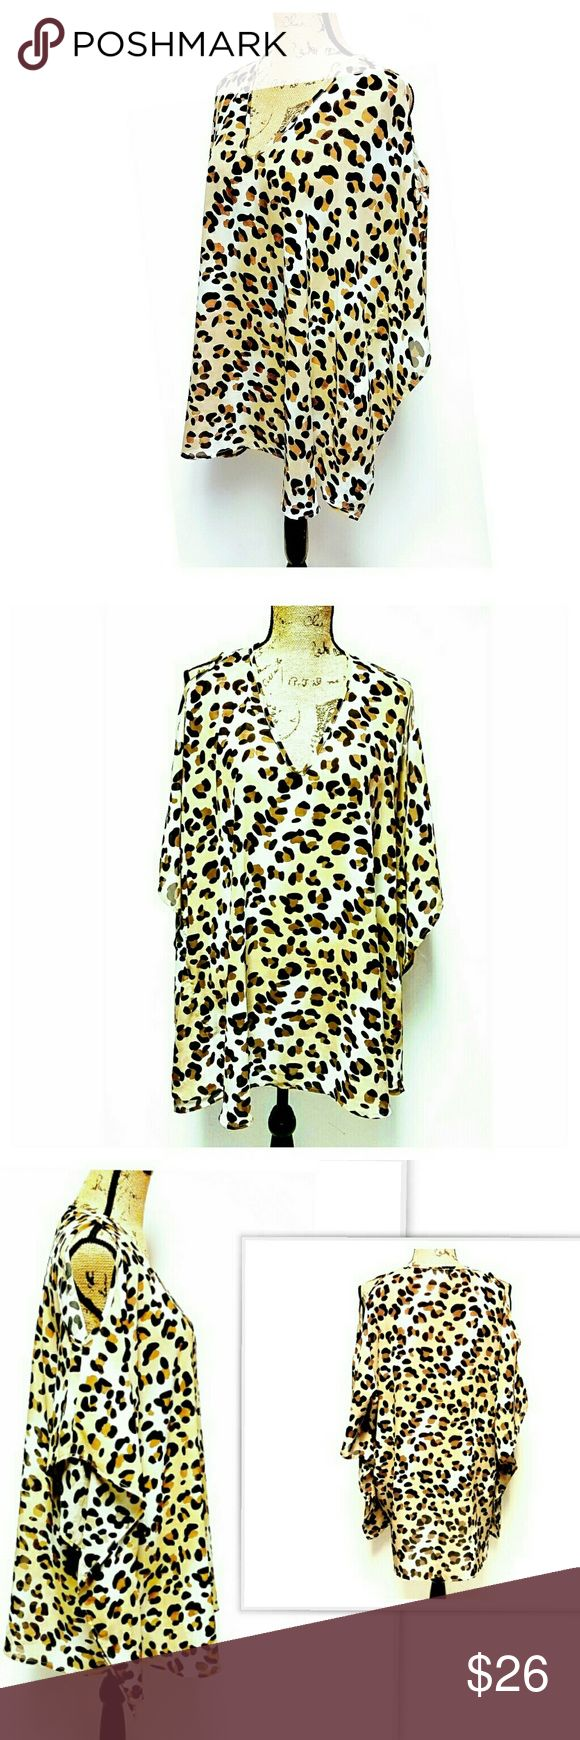 "Leopard Print Top by Let Them Eat Cake Super cute cold shoulder leopard print tunic by Let Them Eat Cake. Size S. Excellent pre-owned condition. Approximate measurements laying flat: length 30"", bust 27.5"". Let them Eat Cake Tops Tunics"